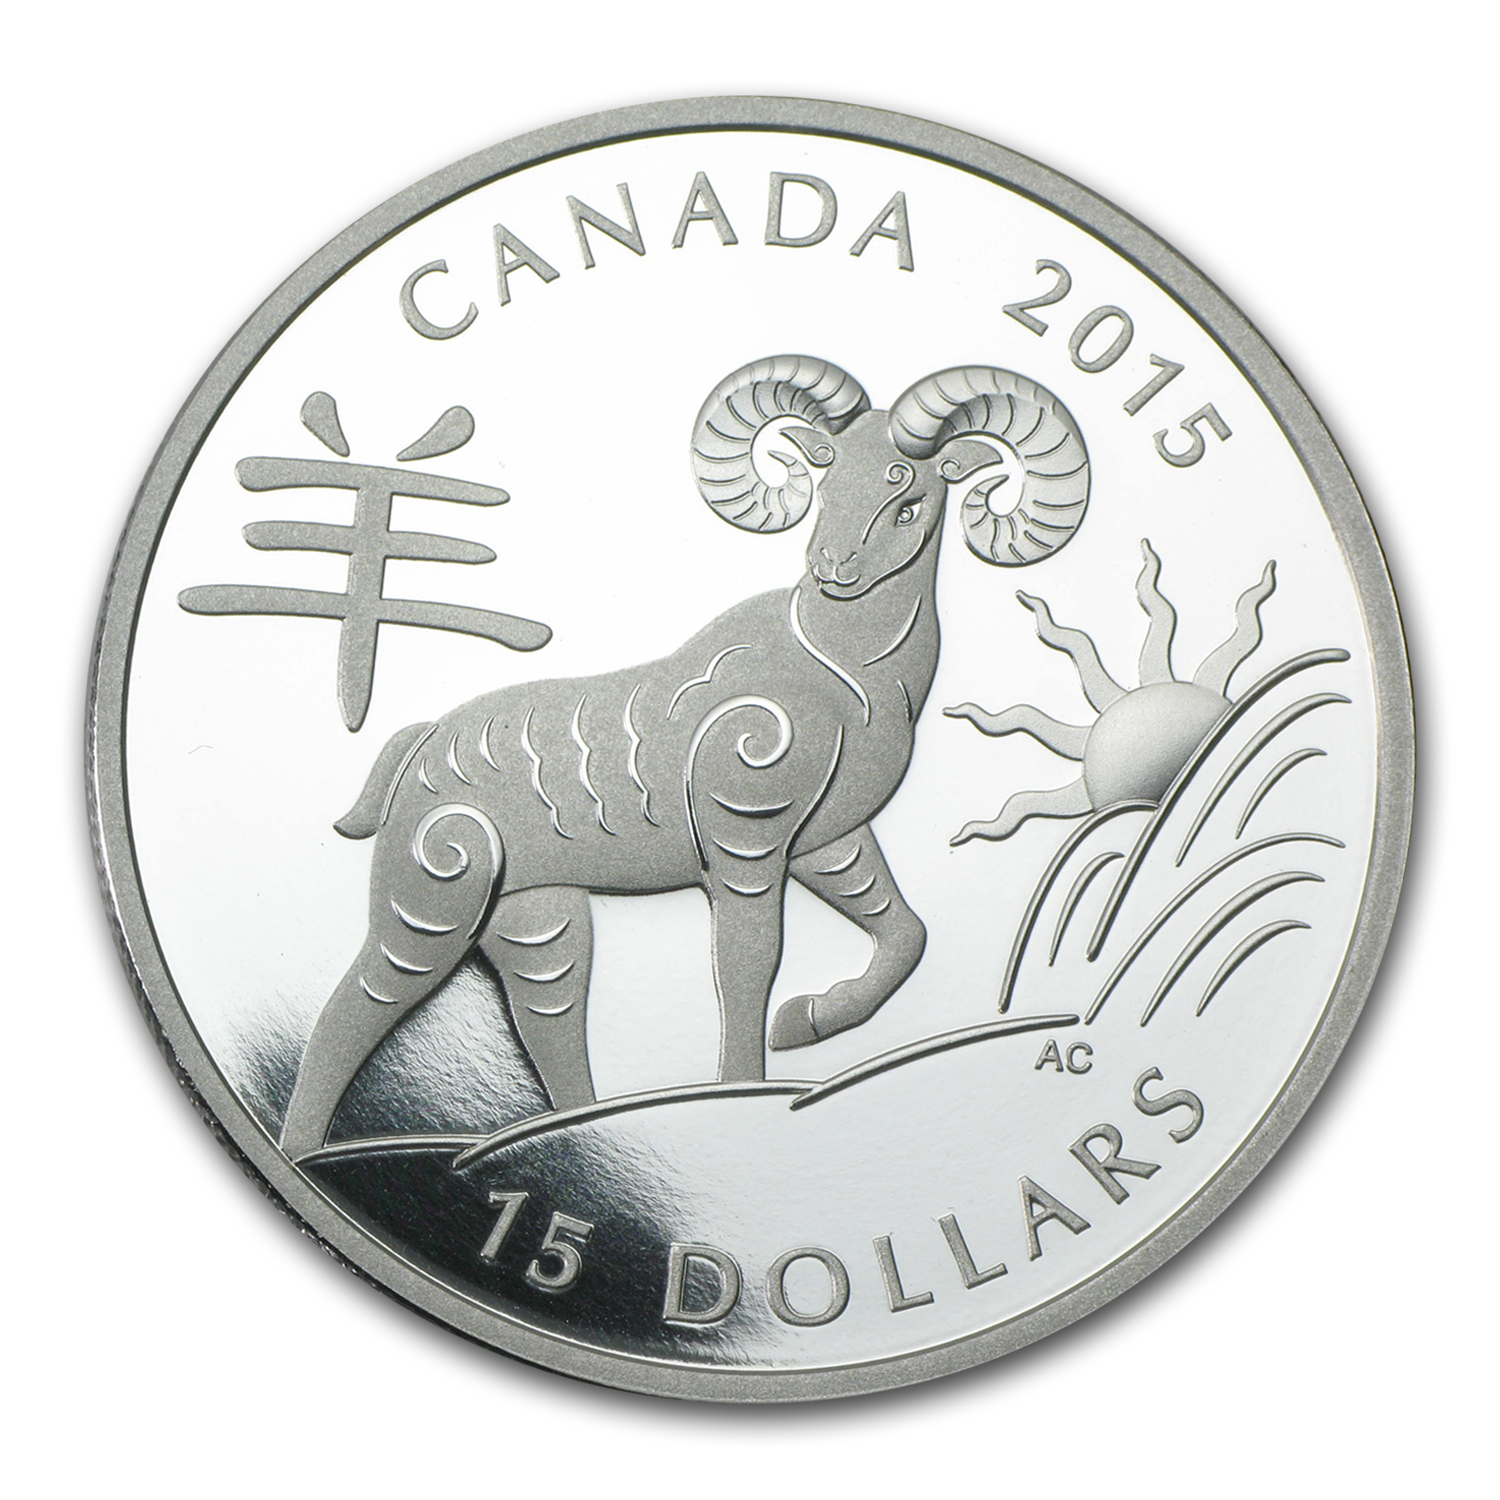 2015 Canada 1 oz Silver $15 Lunar Year of the Sheep Proof